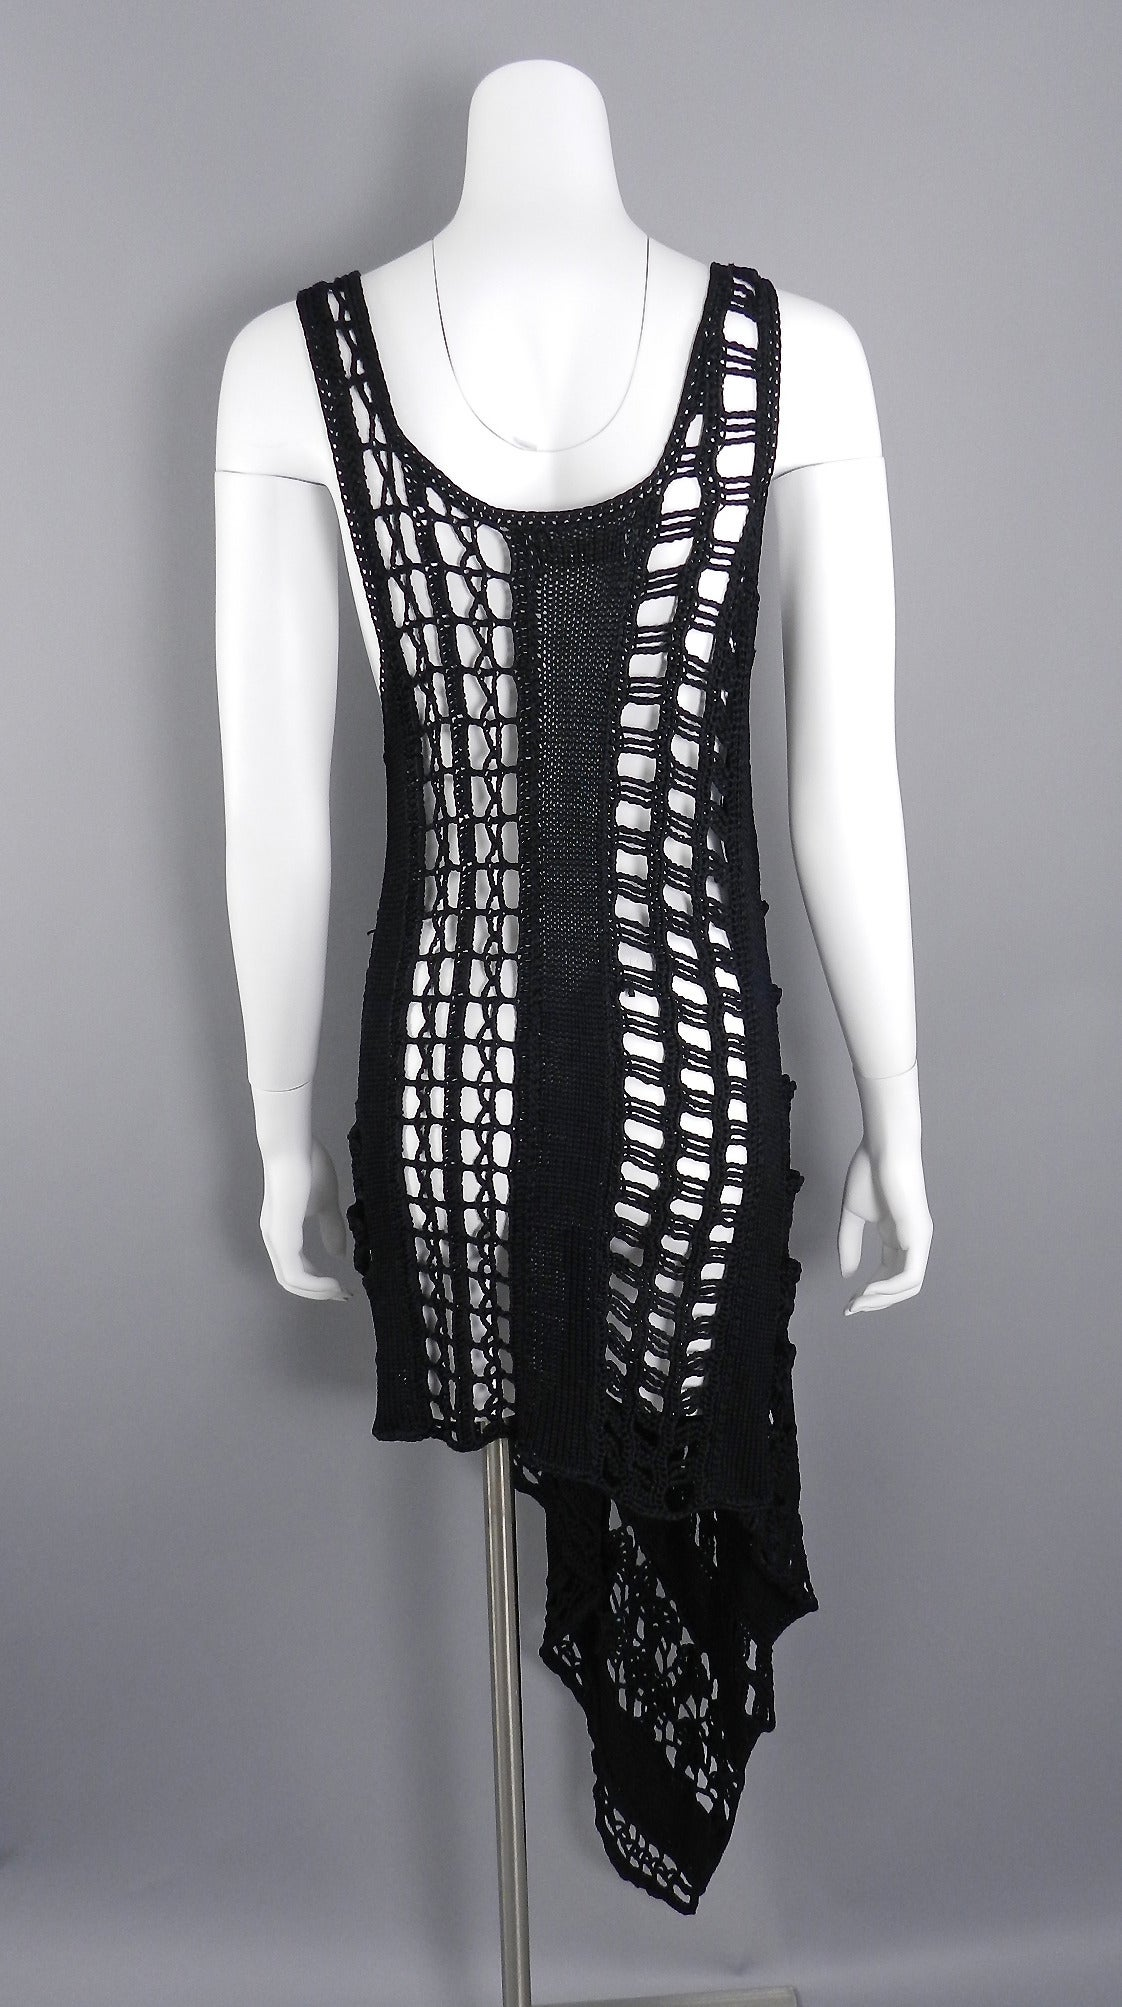 Black 1990's Yohji Yamamoto Knit Asymmetrical Dress For Sale